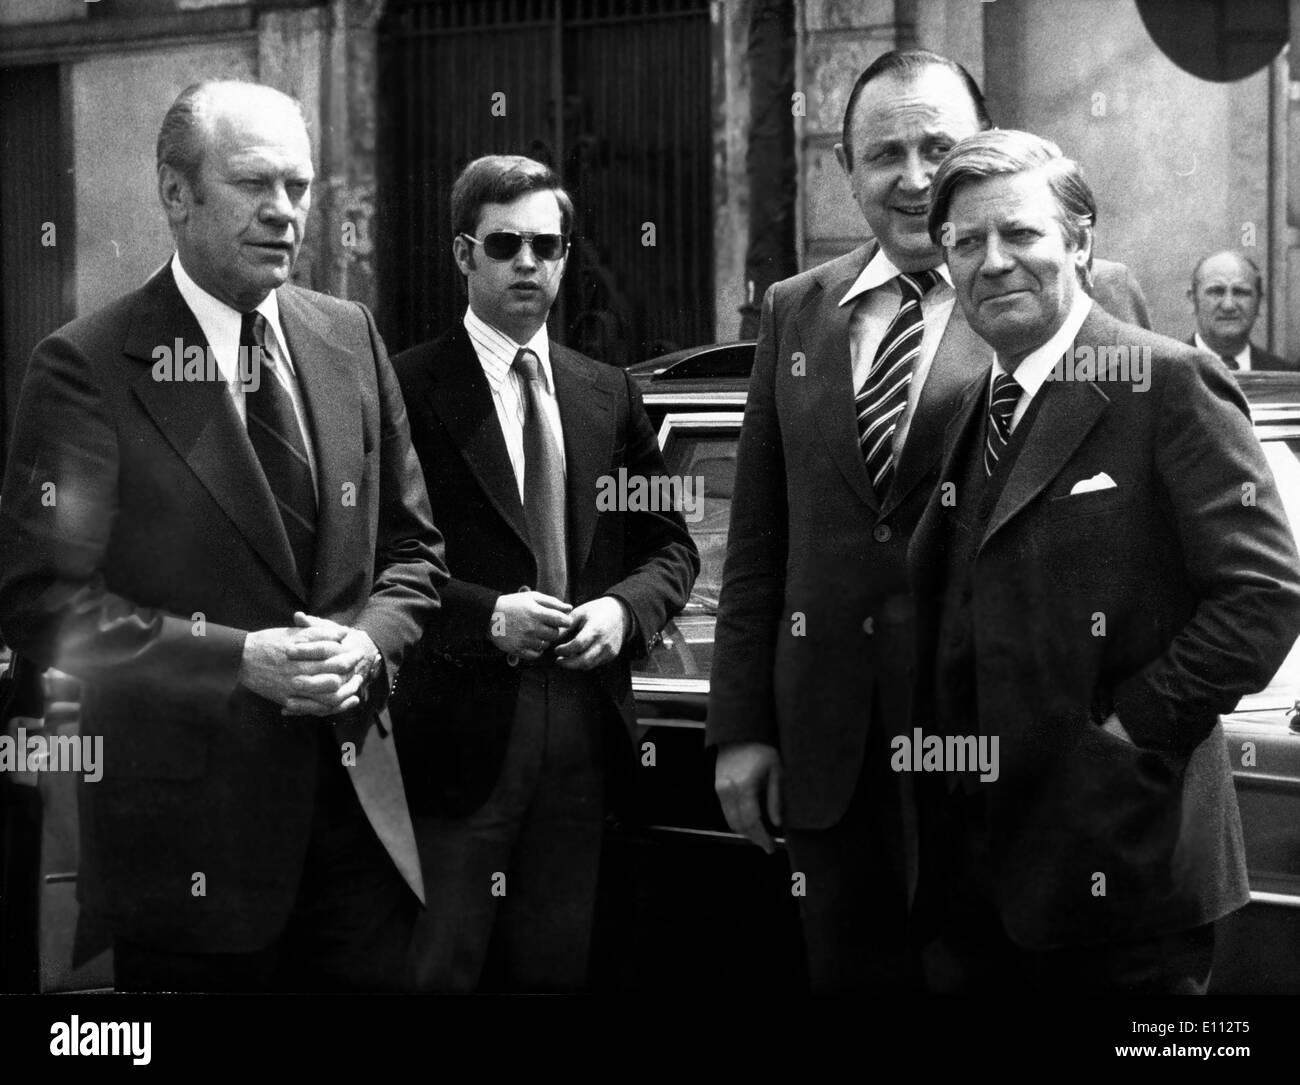 President Gerald Ford arrives for NATO Summit - Stock Image